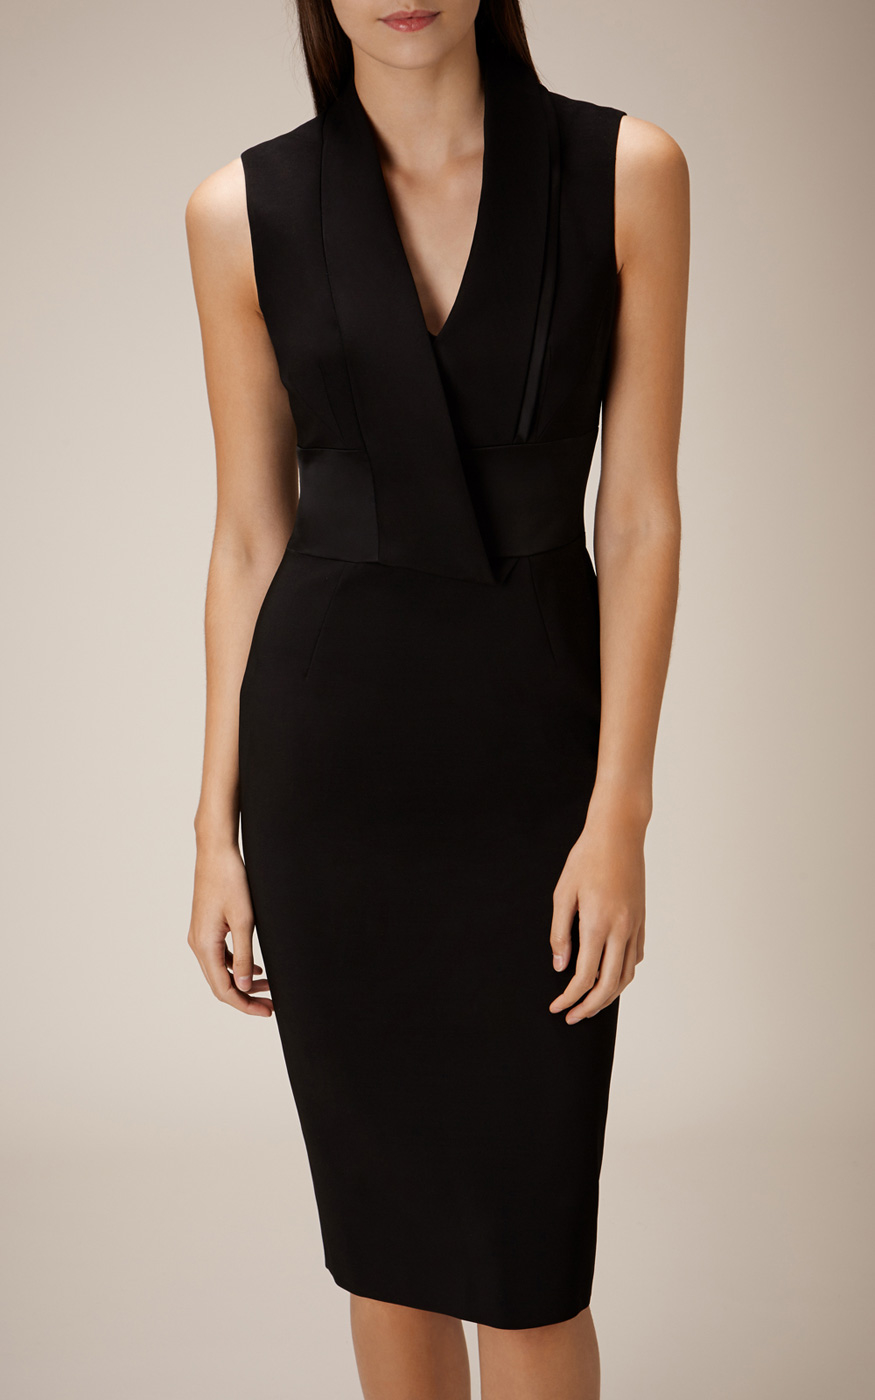 Karen Millen Tuxedo Pencil Dress In Black Lyst